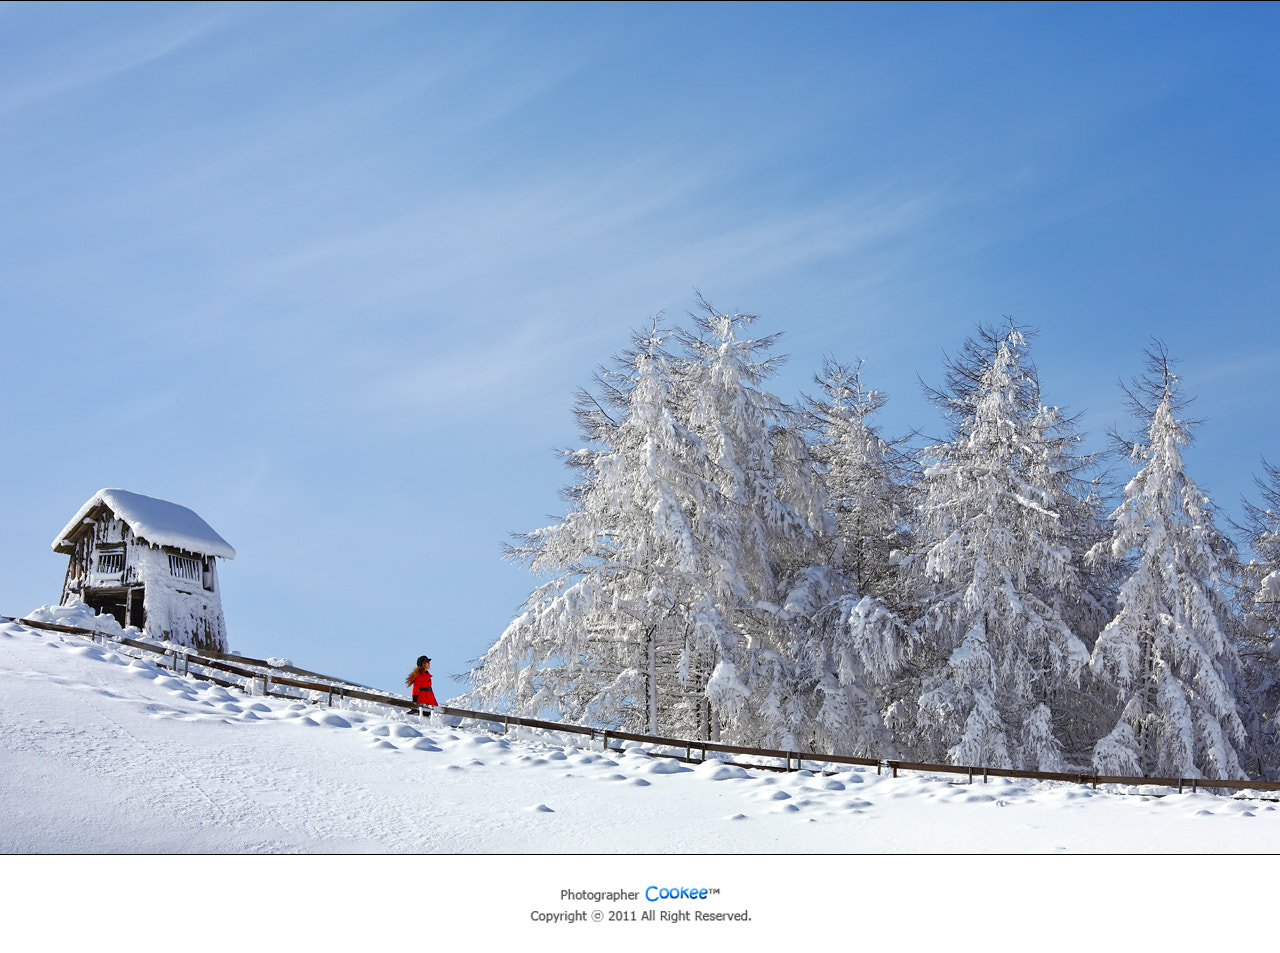 Photograph Stories of Winter by Steve Jeon on 500px